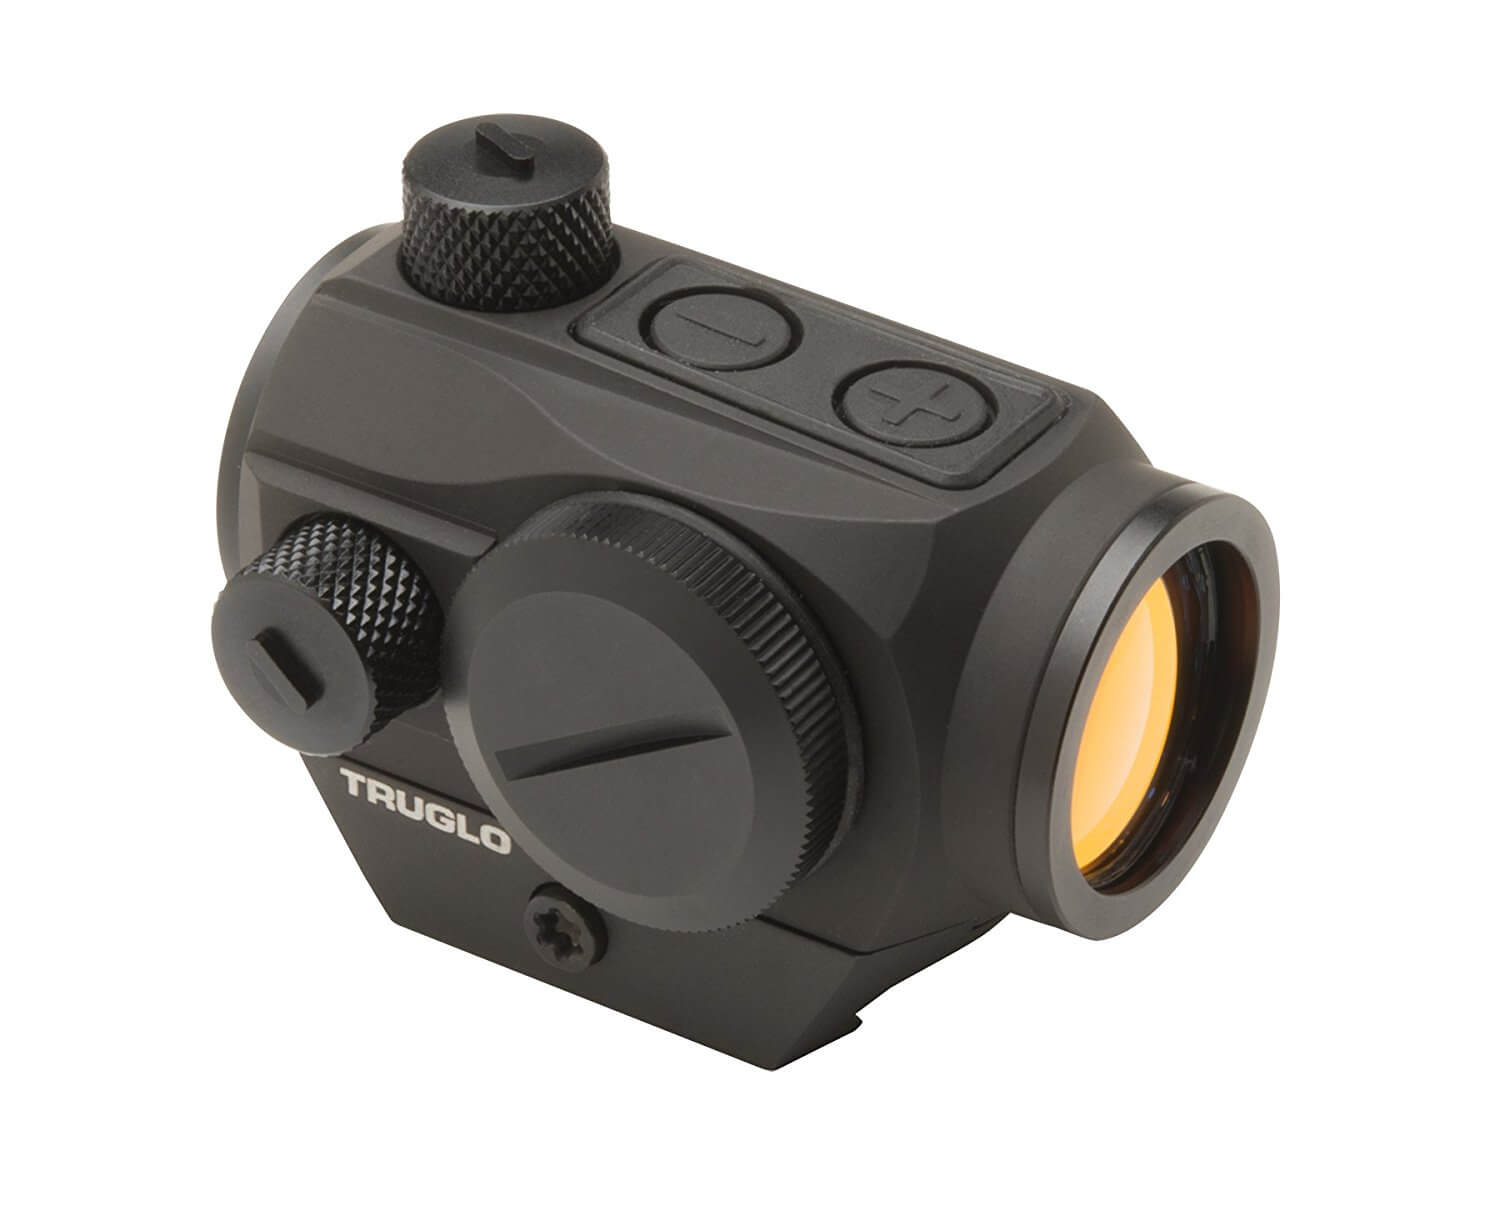 TRUGLO Tactical Red Dot Sight